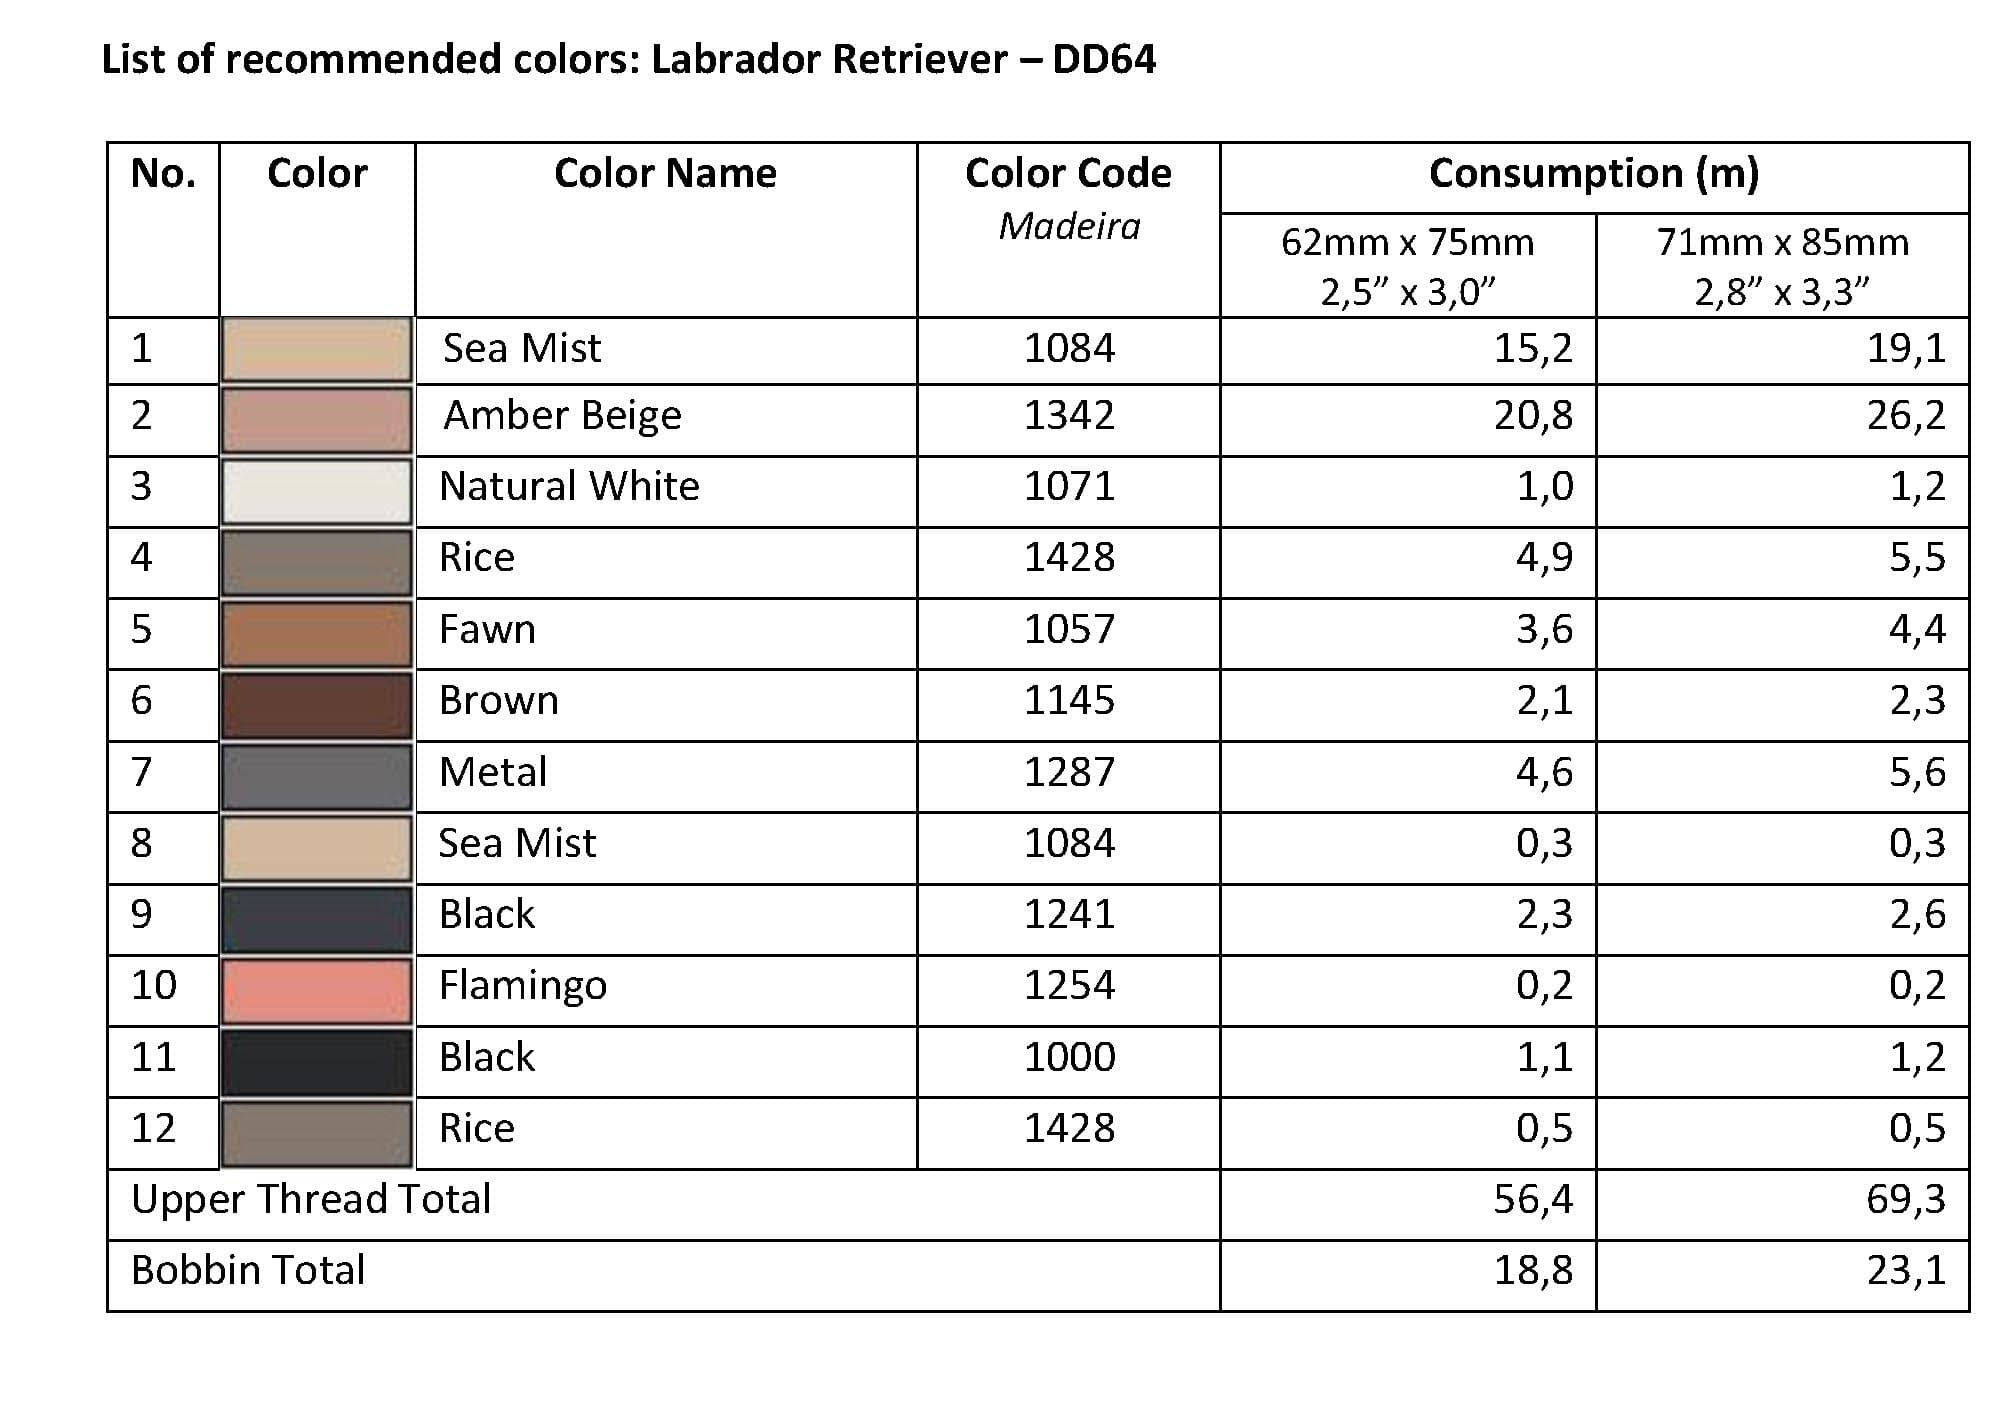 List of Recommended Colors -Labrador Retriever DD64